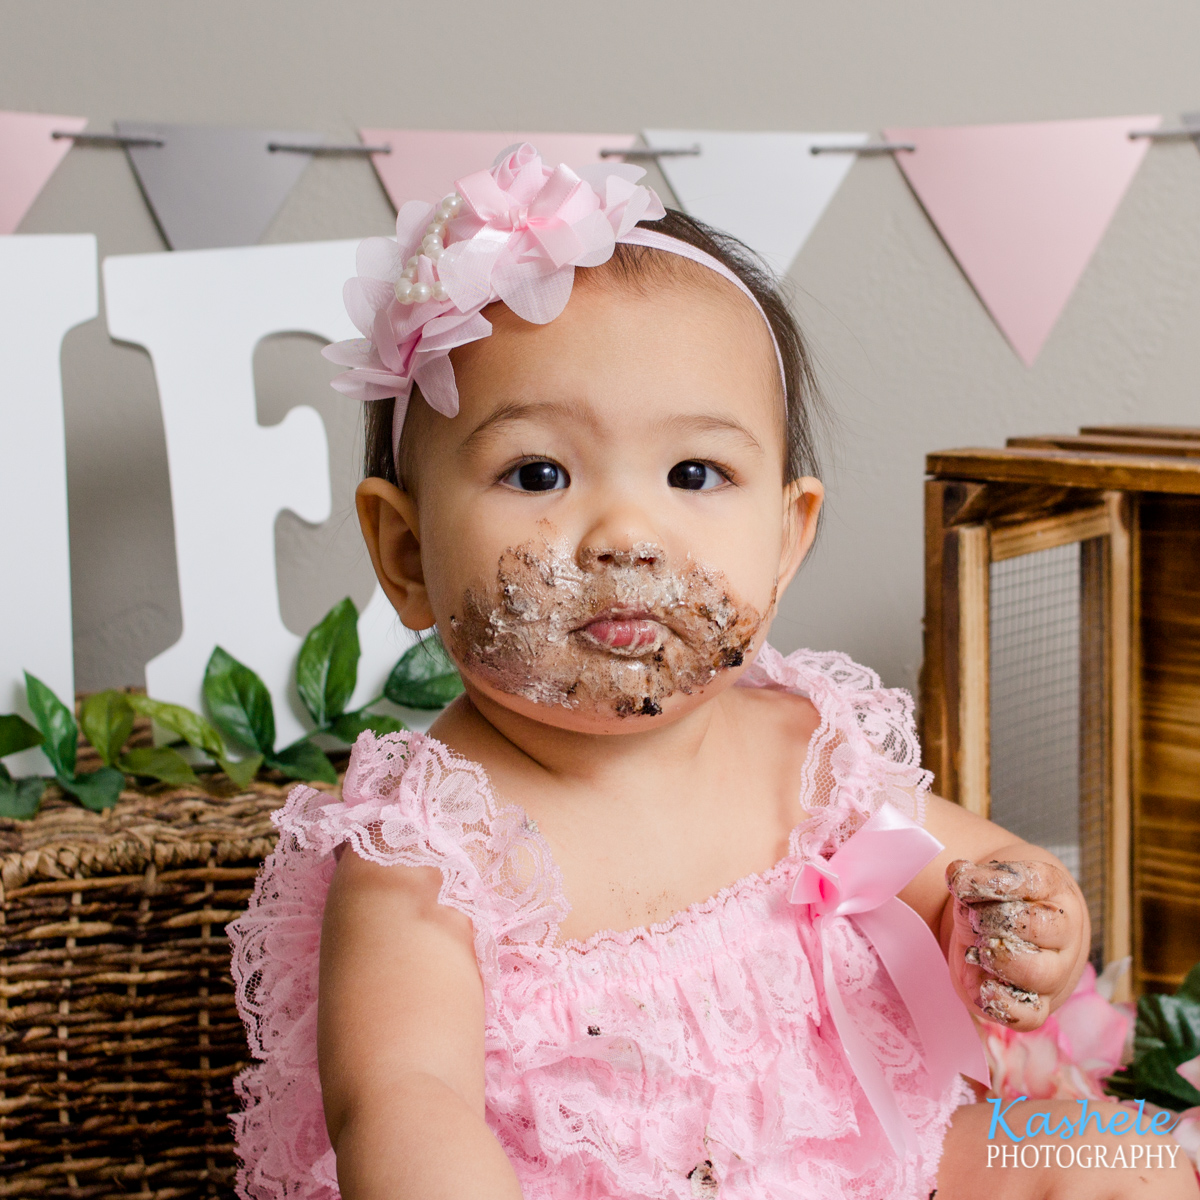 Little girl covered in cake